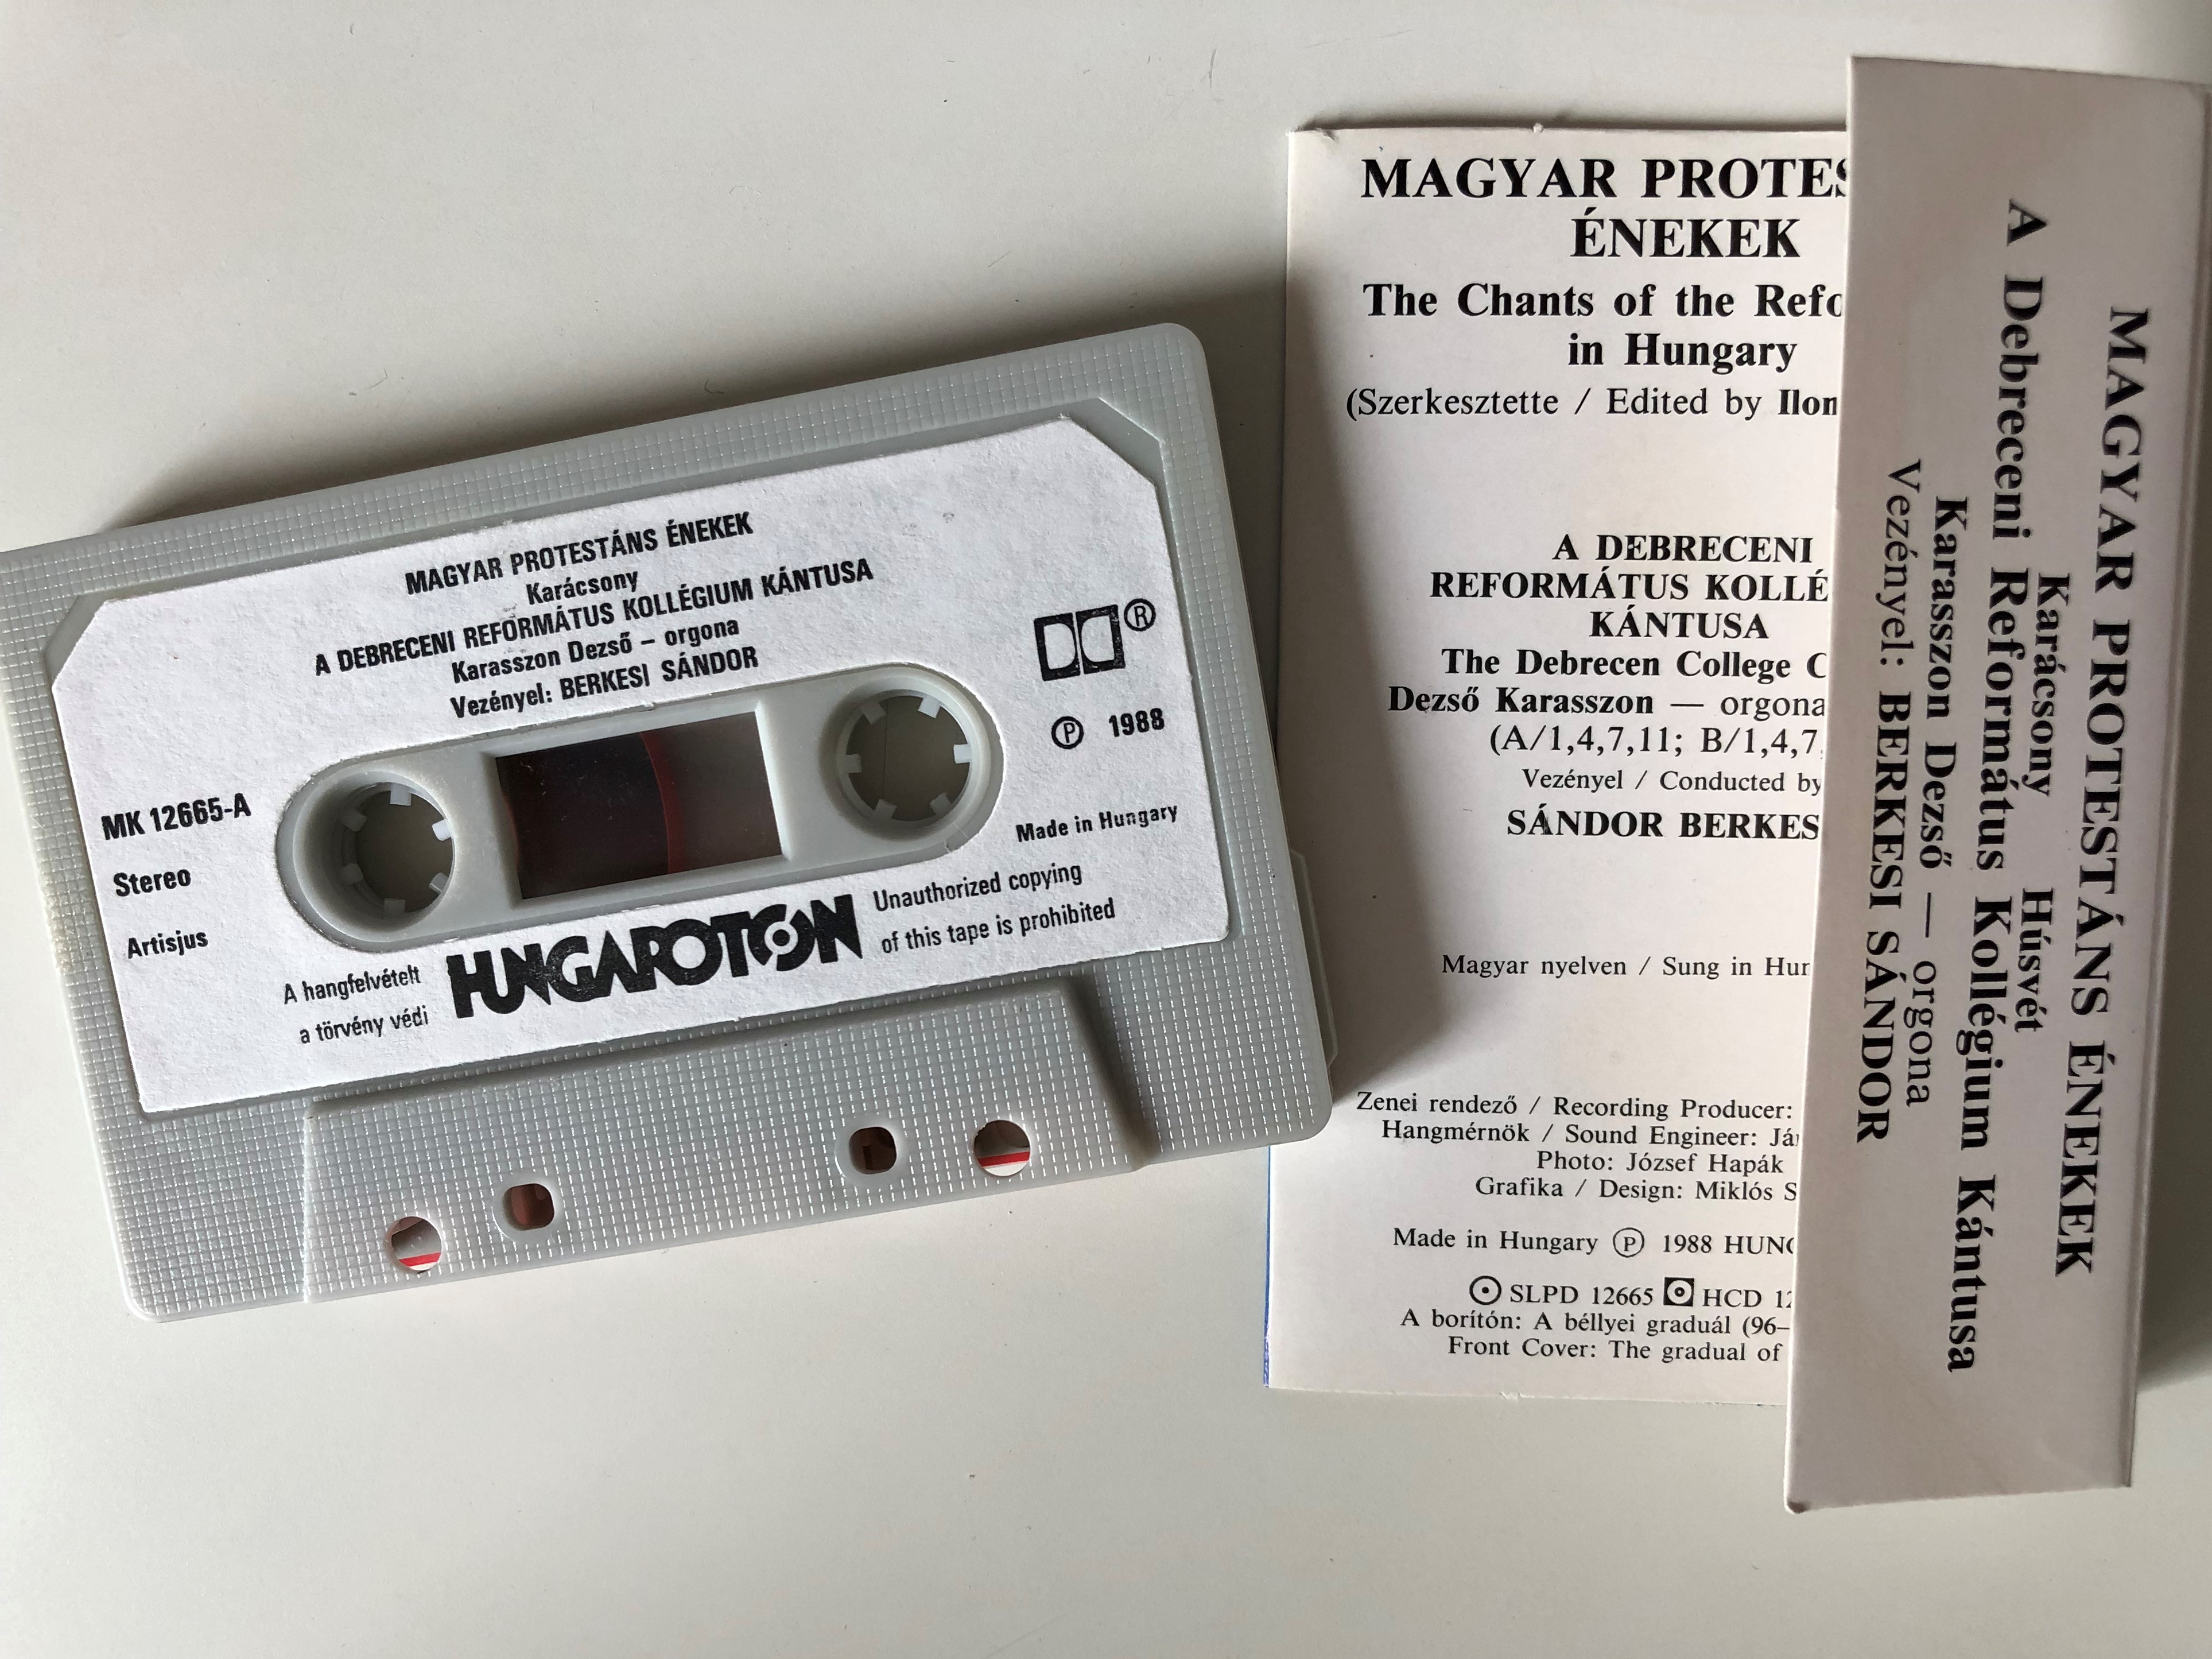 the-chants-of-the-reformation-in-hungary-christmas-easter-the-debrecen-college-cantus-conduczed-s-ndor-berkesi-hungaroton-cassette-stereo-mk-12665-2-.jpg